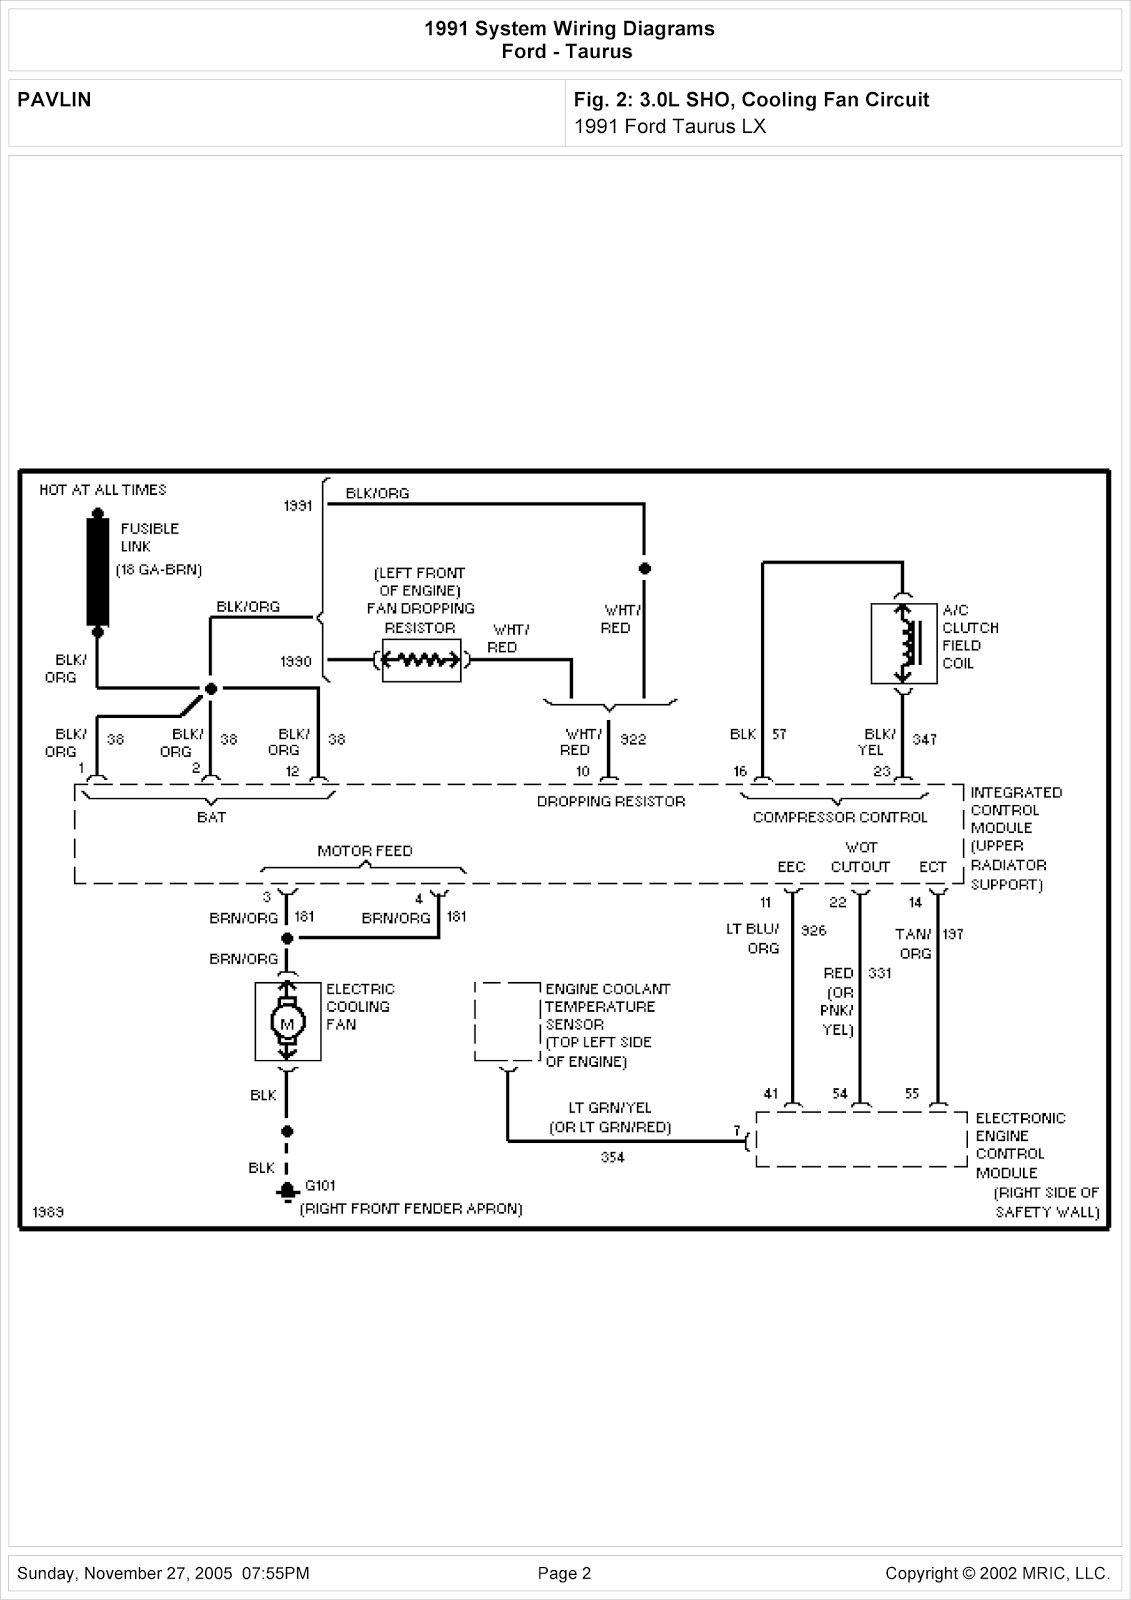 1999 Ford Taurus System Wiring Diagram cooling Fan Circuit | Schematic Wiring Diagrams Solutions